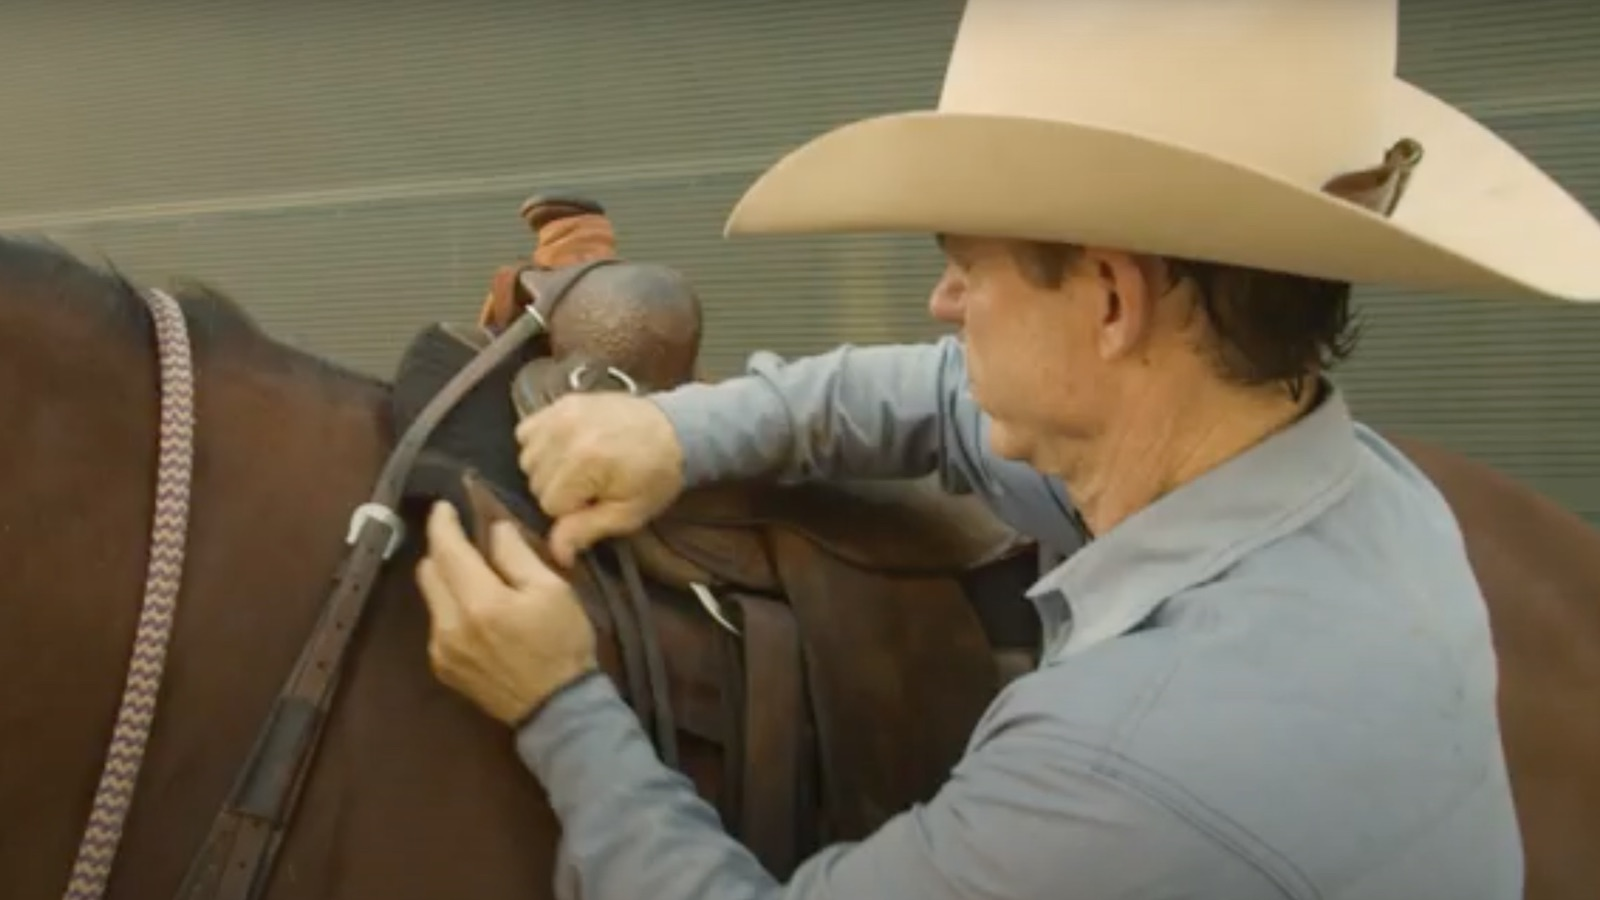 Chris Cox explaining proper saddle pad placement